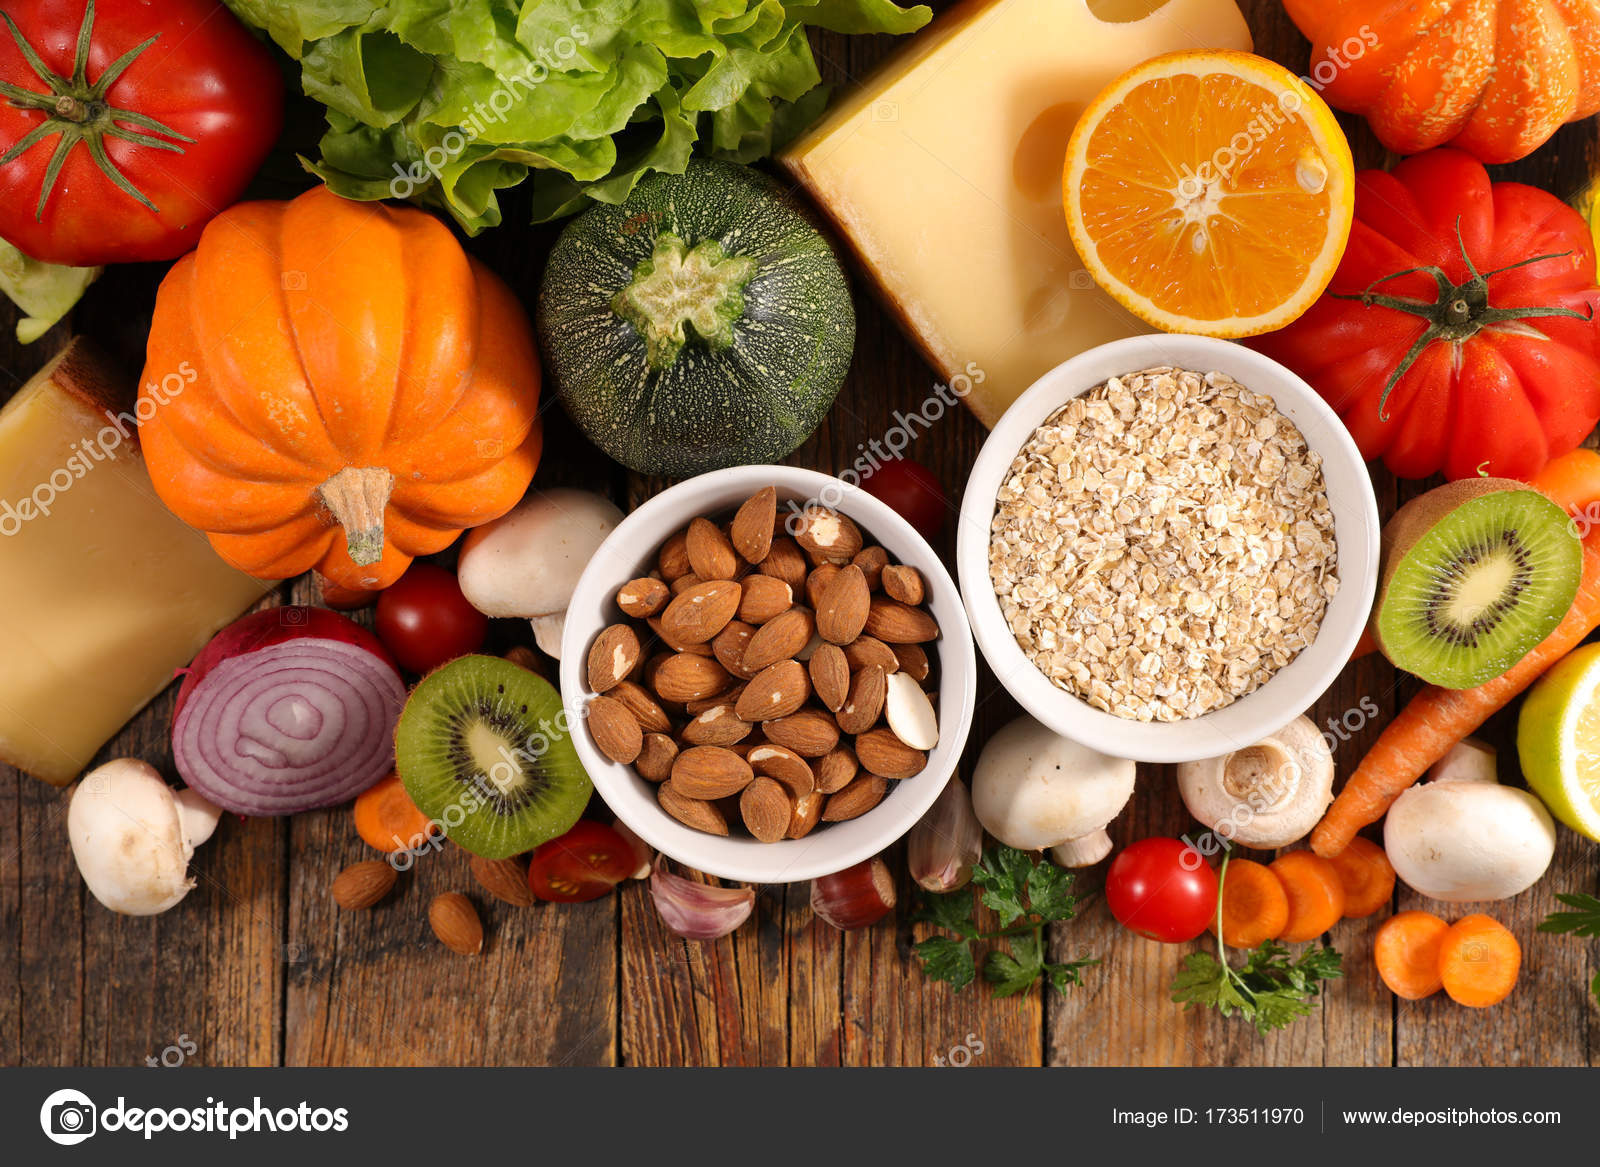 selection of healthy eating